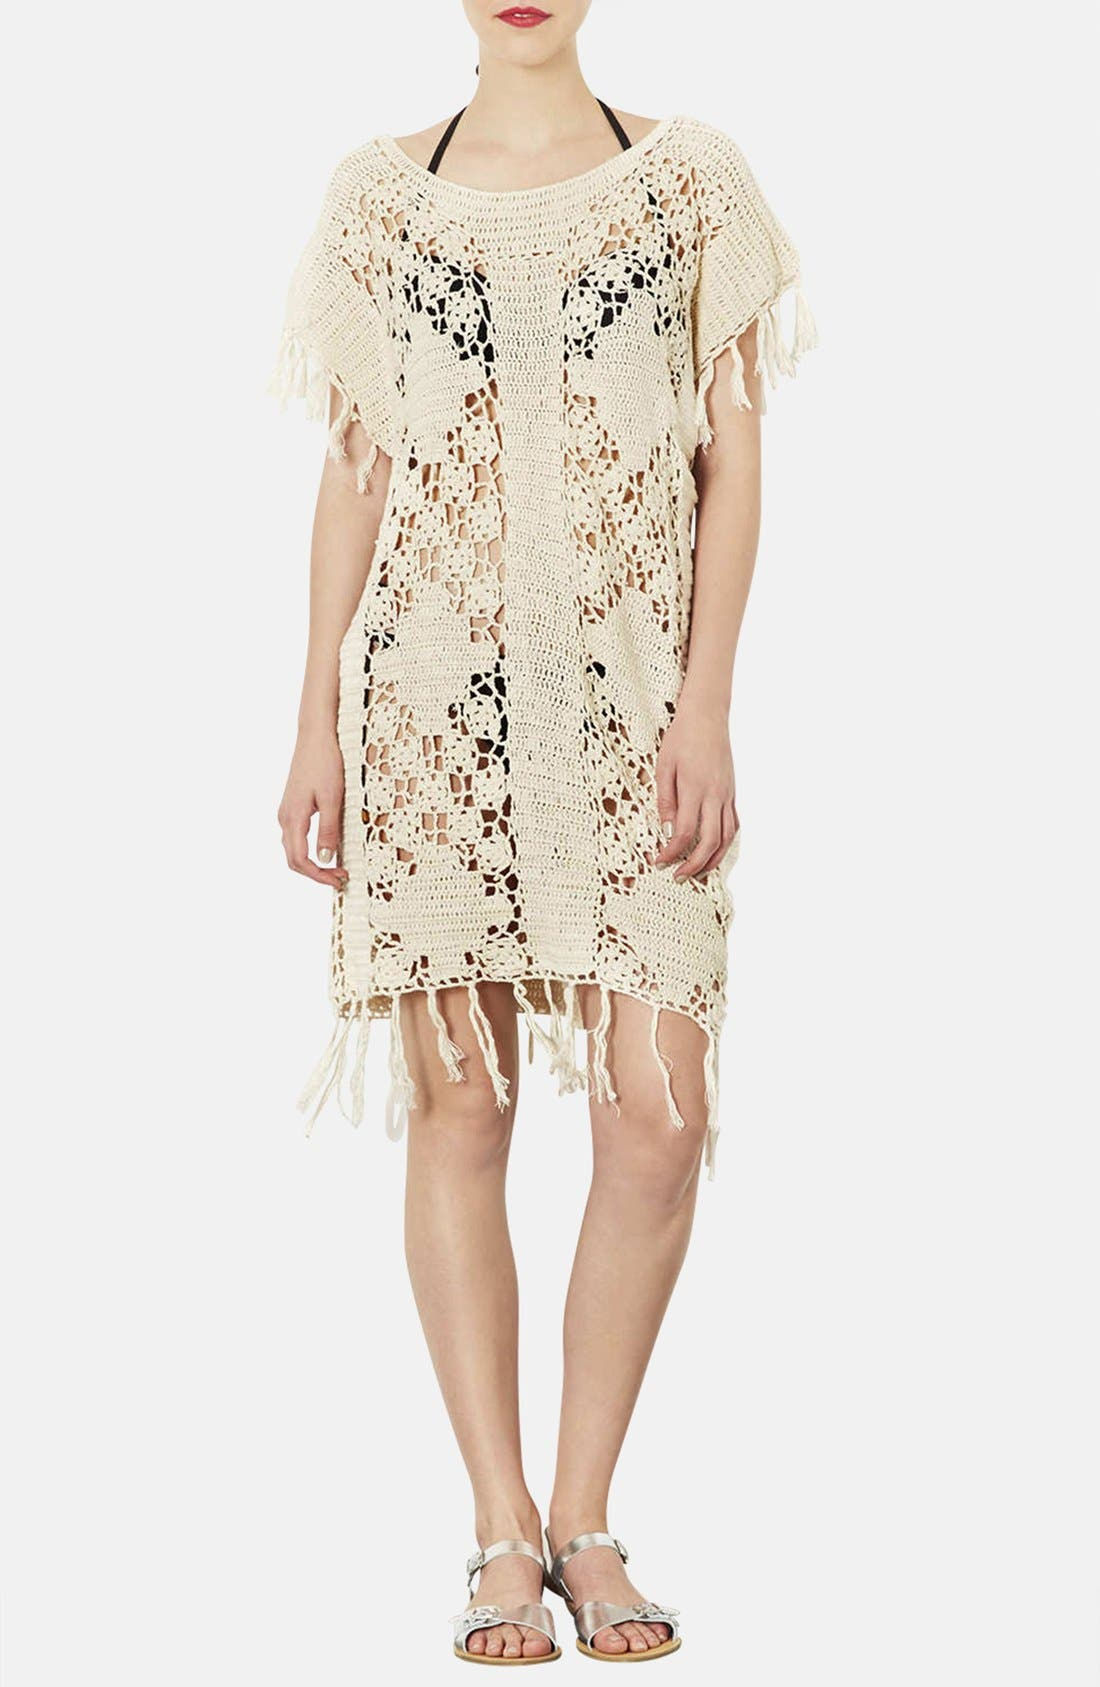 Alternate Image 1 Selected - Topshop Fringed Crocheted Cover-Up